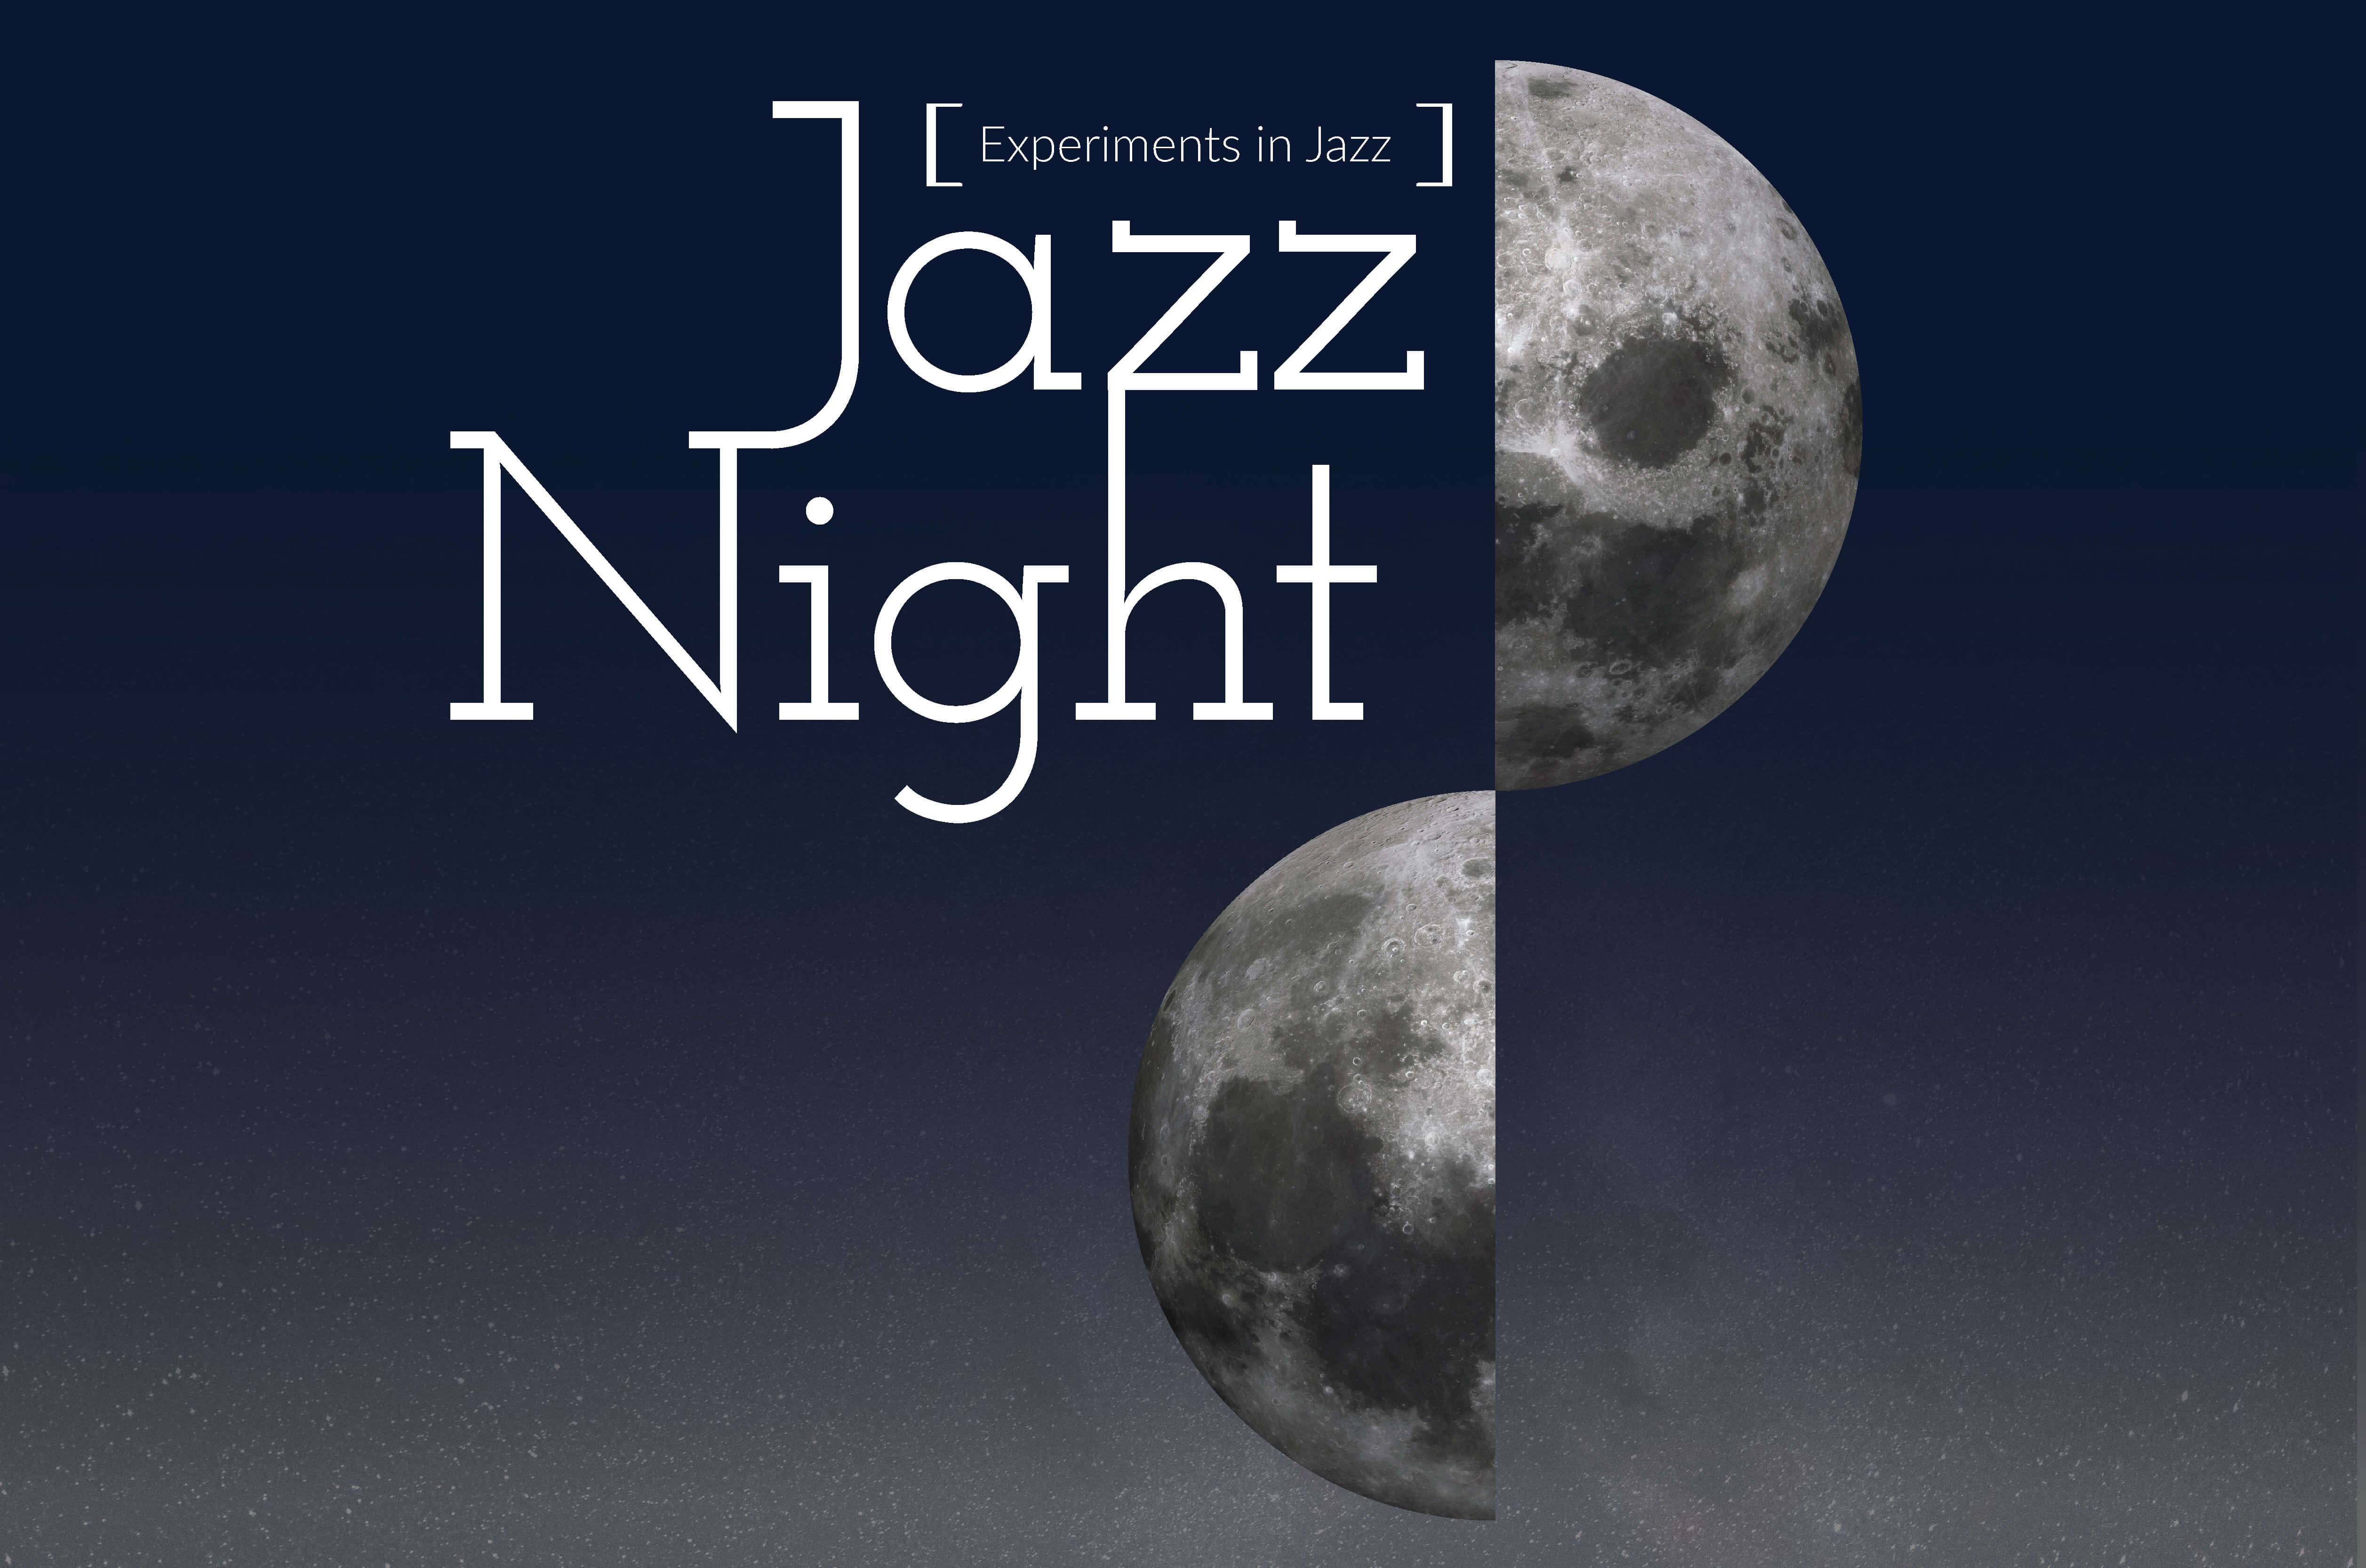 """Image of moon with the words """"Jazz Night."""""""